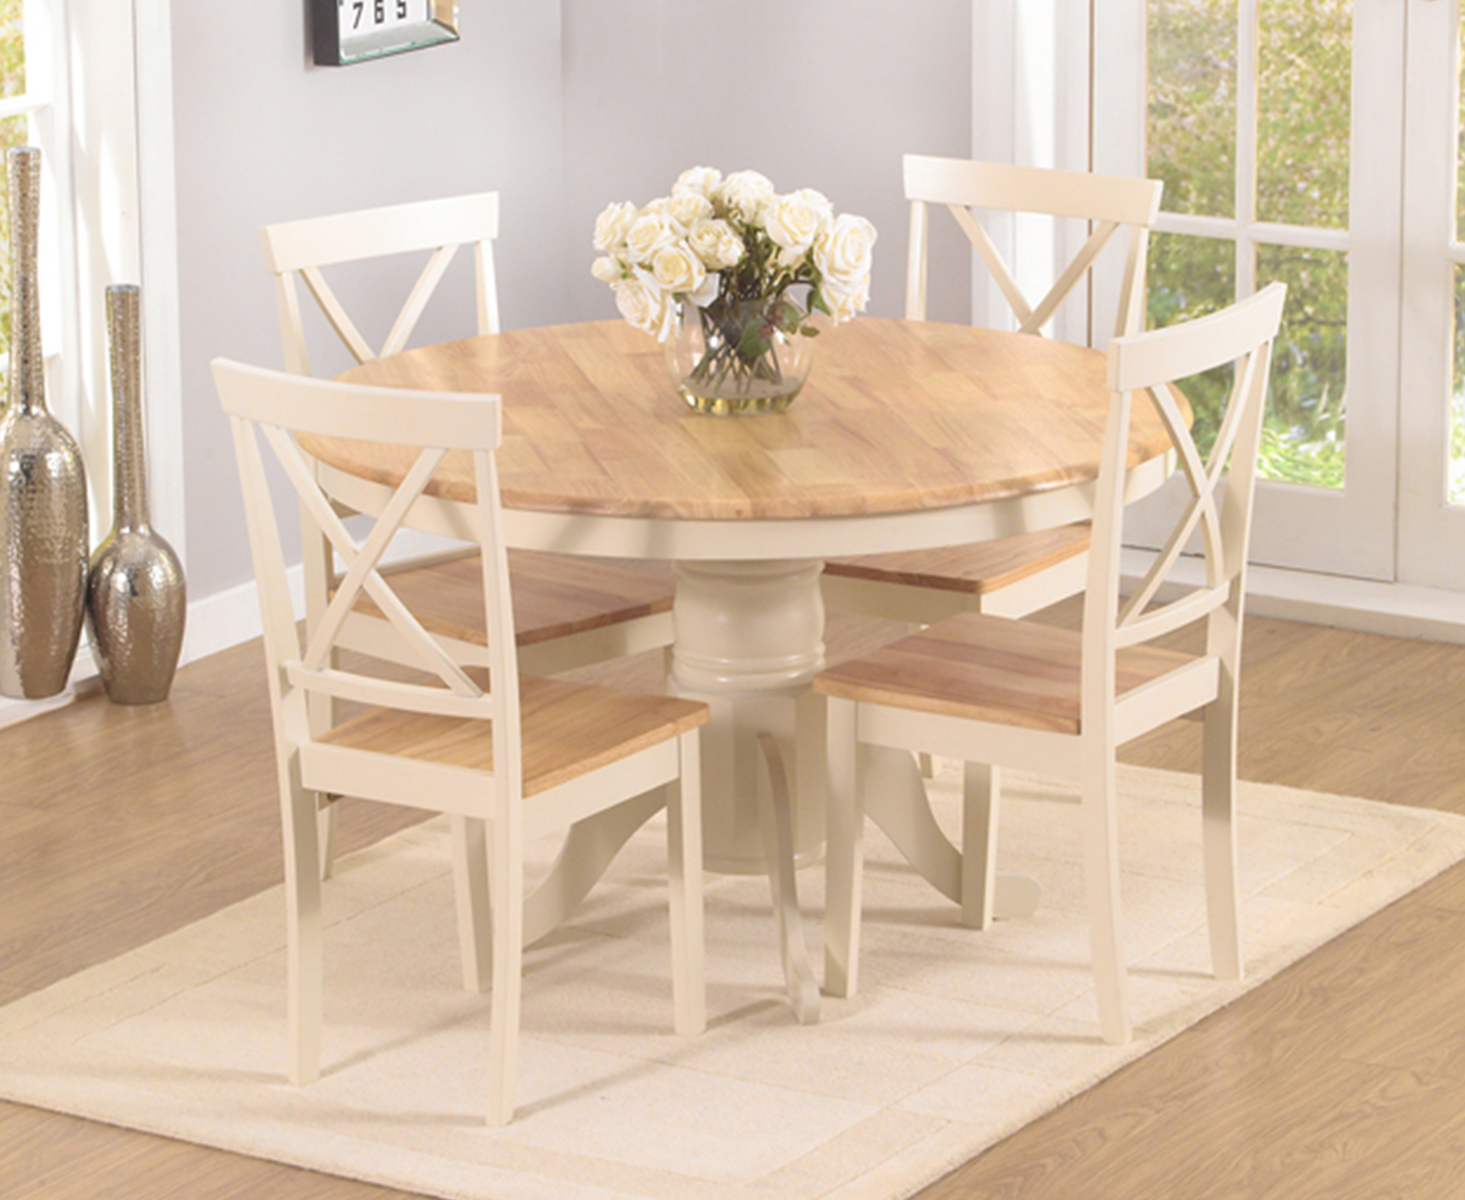 Epsom Cream 9cm Round Pedestal Dining Table Set with Chairs